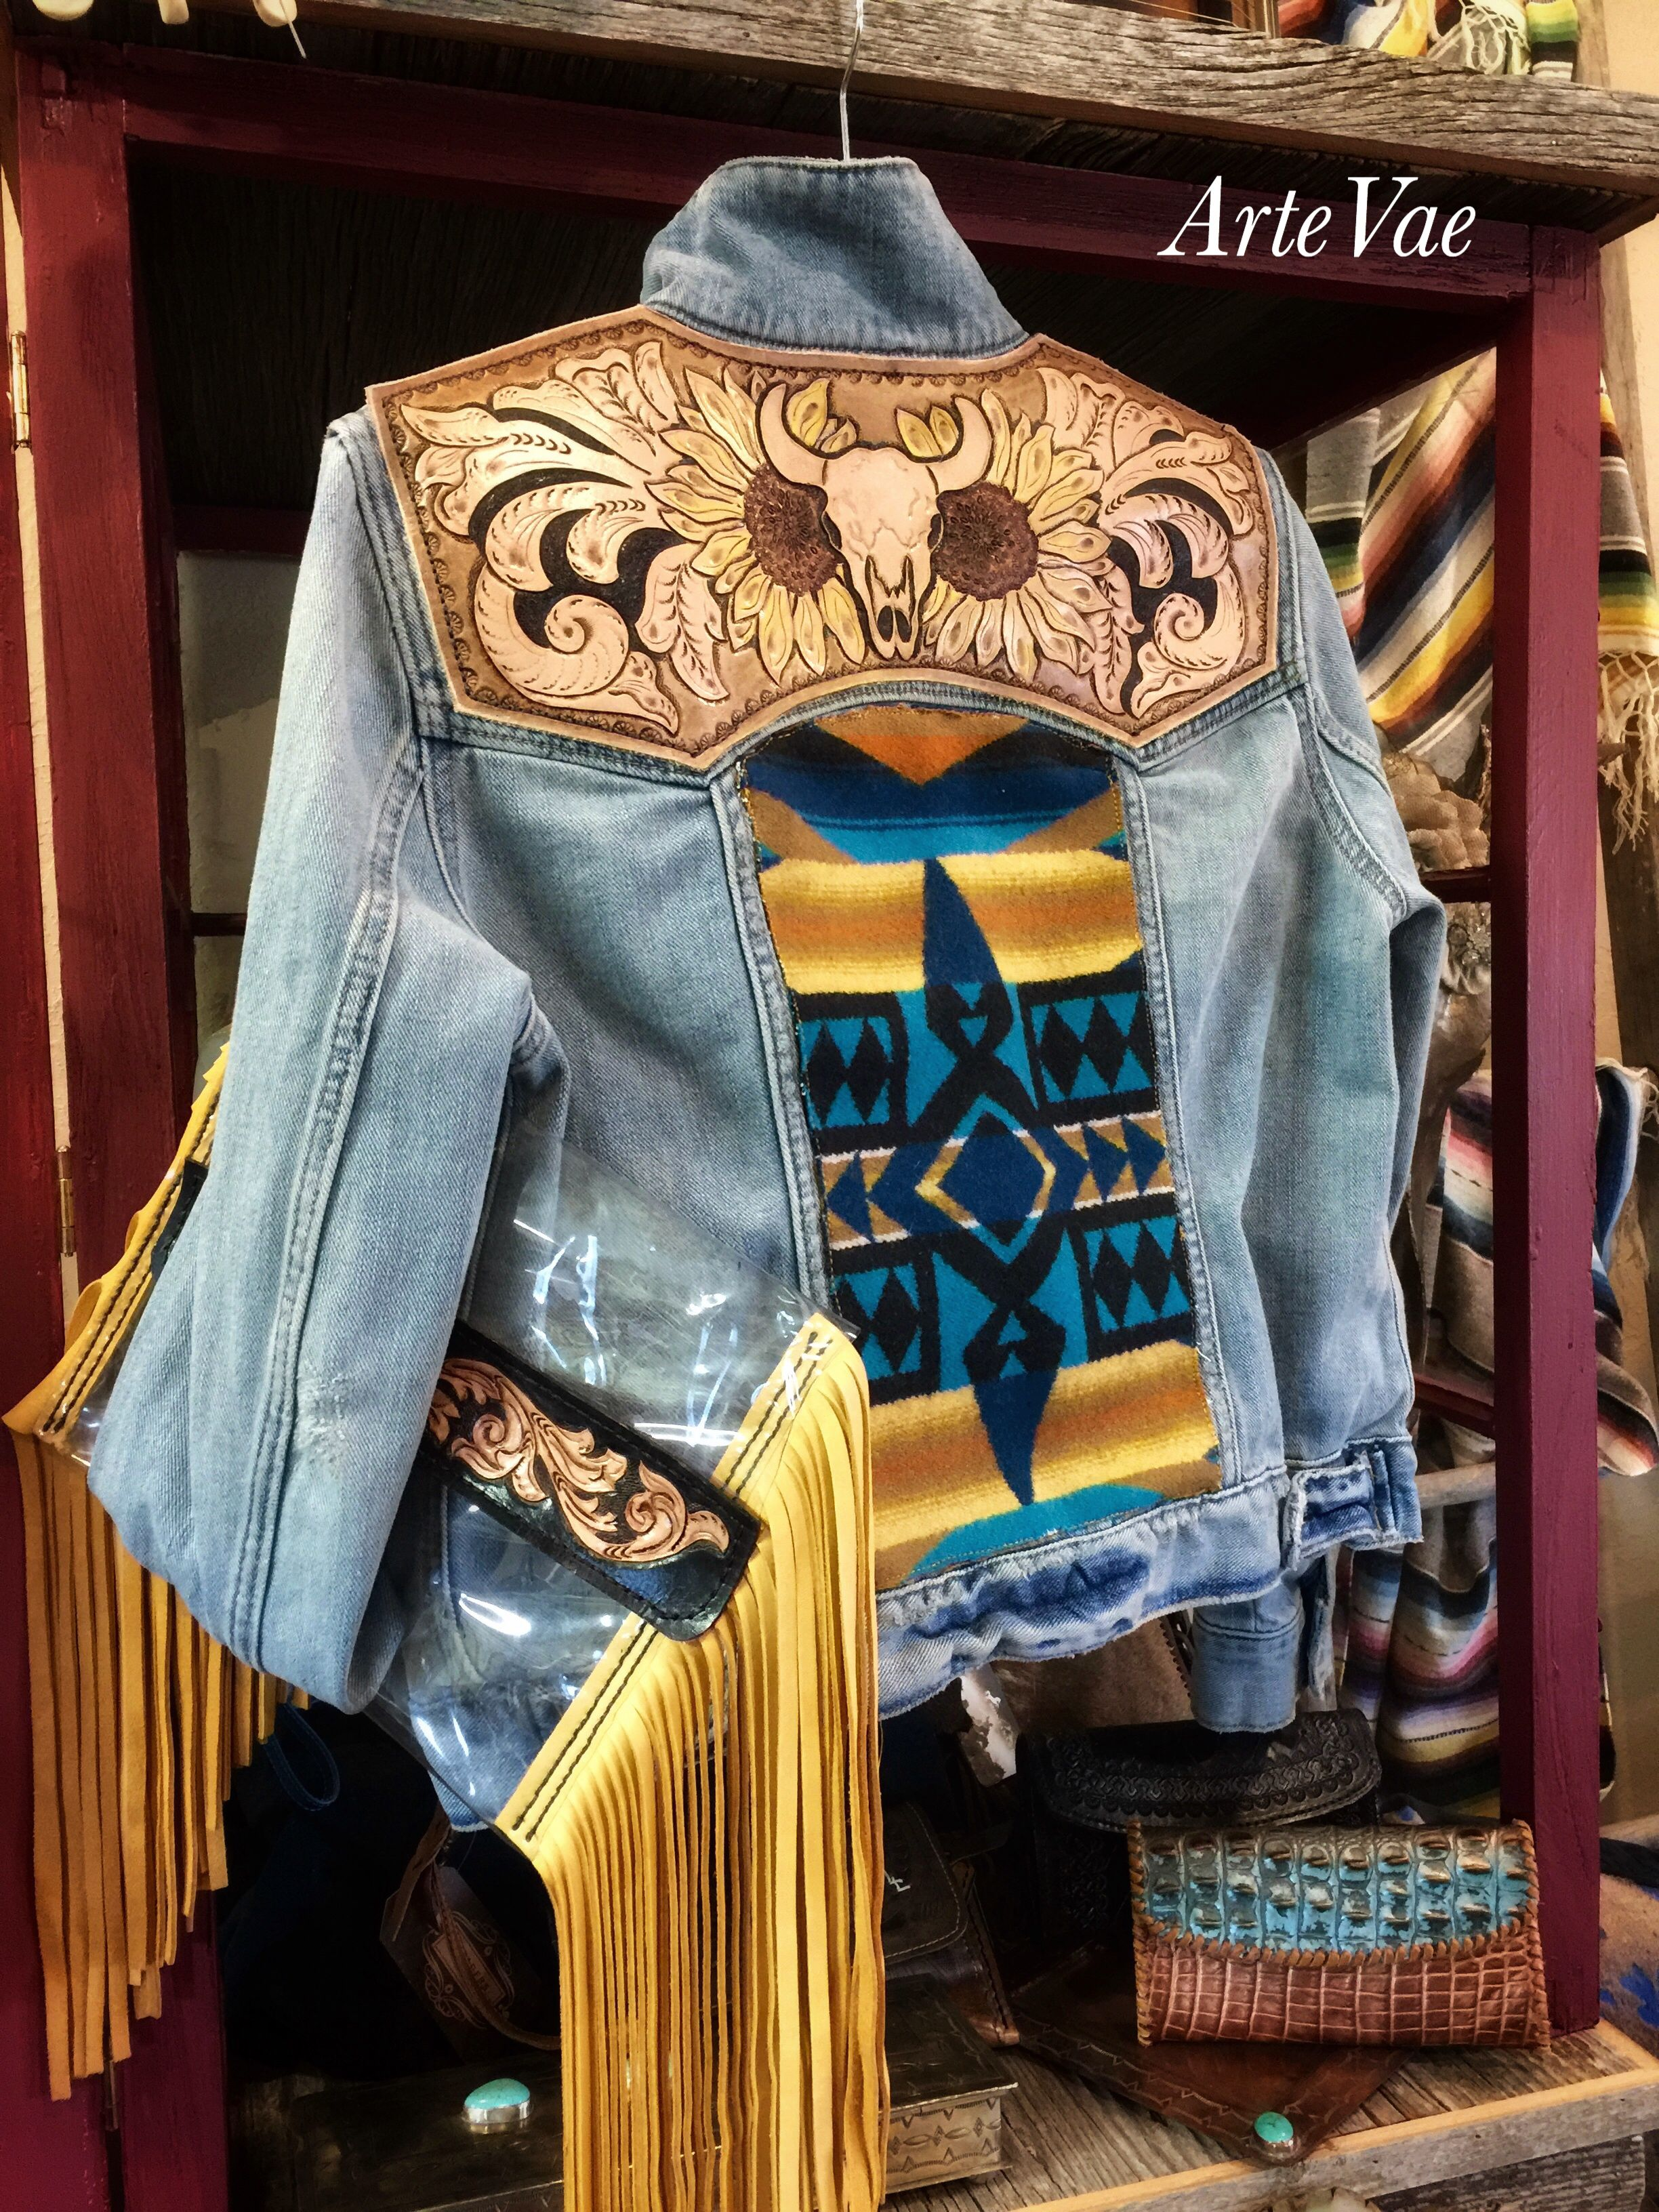 Denim And Leather Nfr Jacket By Artevae Leather Jacket Style Winter Fashion Coats Leather Denim [ 3264 x 2448 Pixel ]